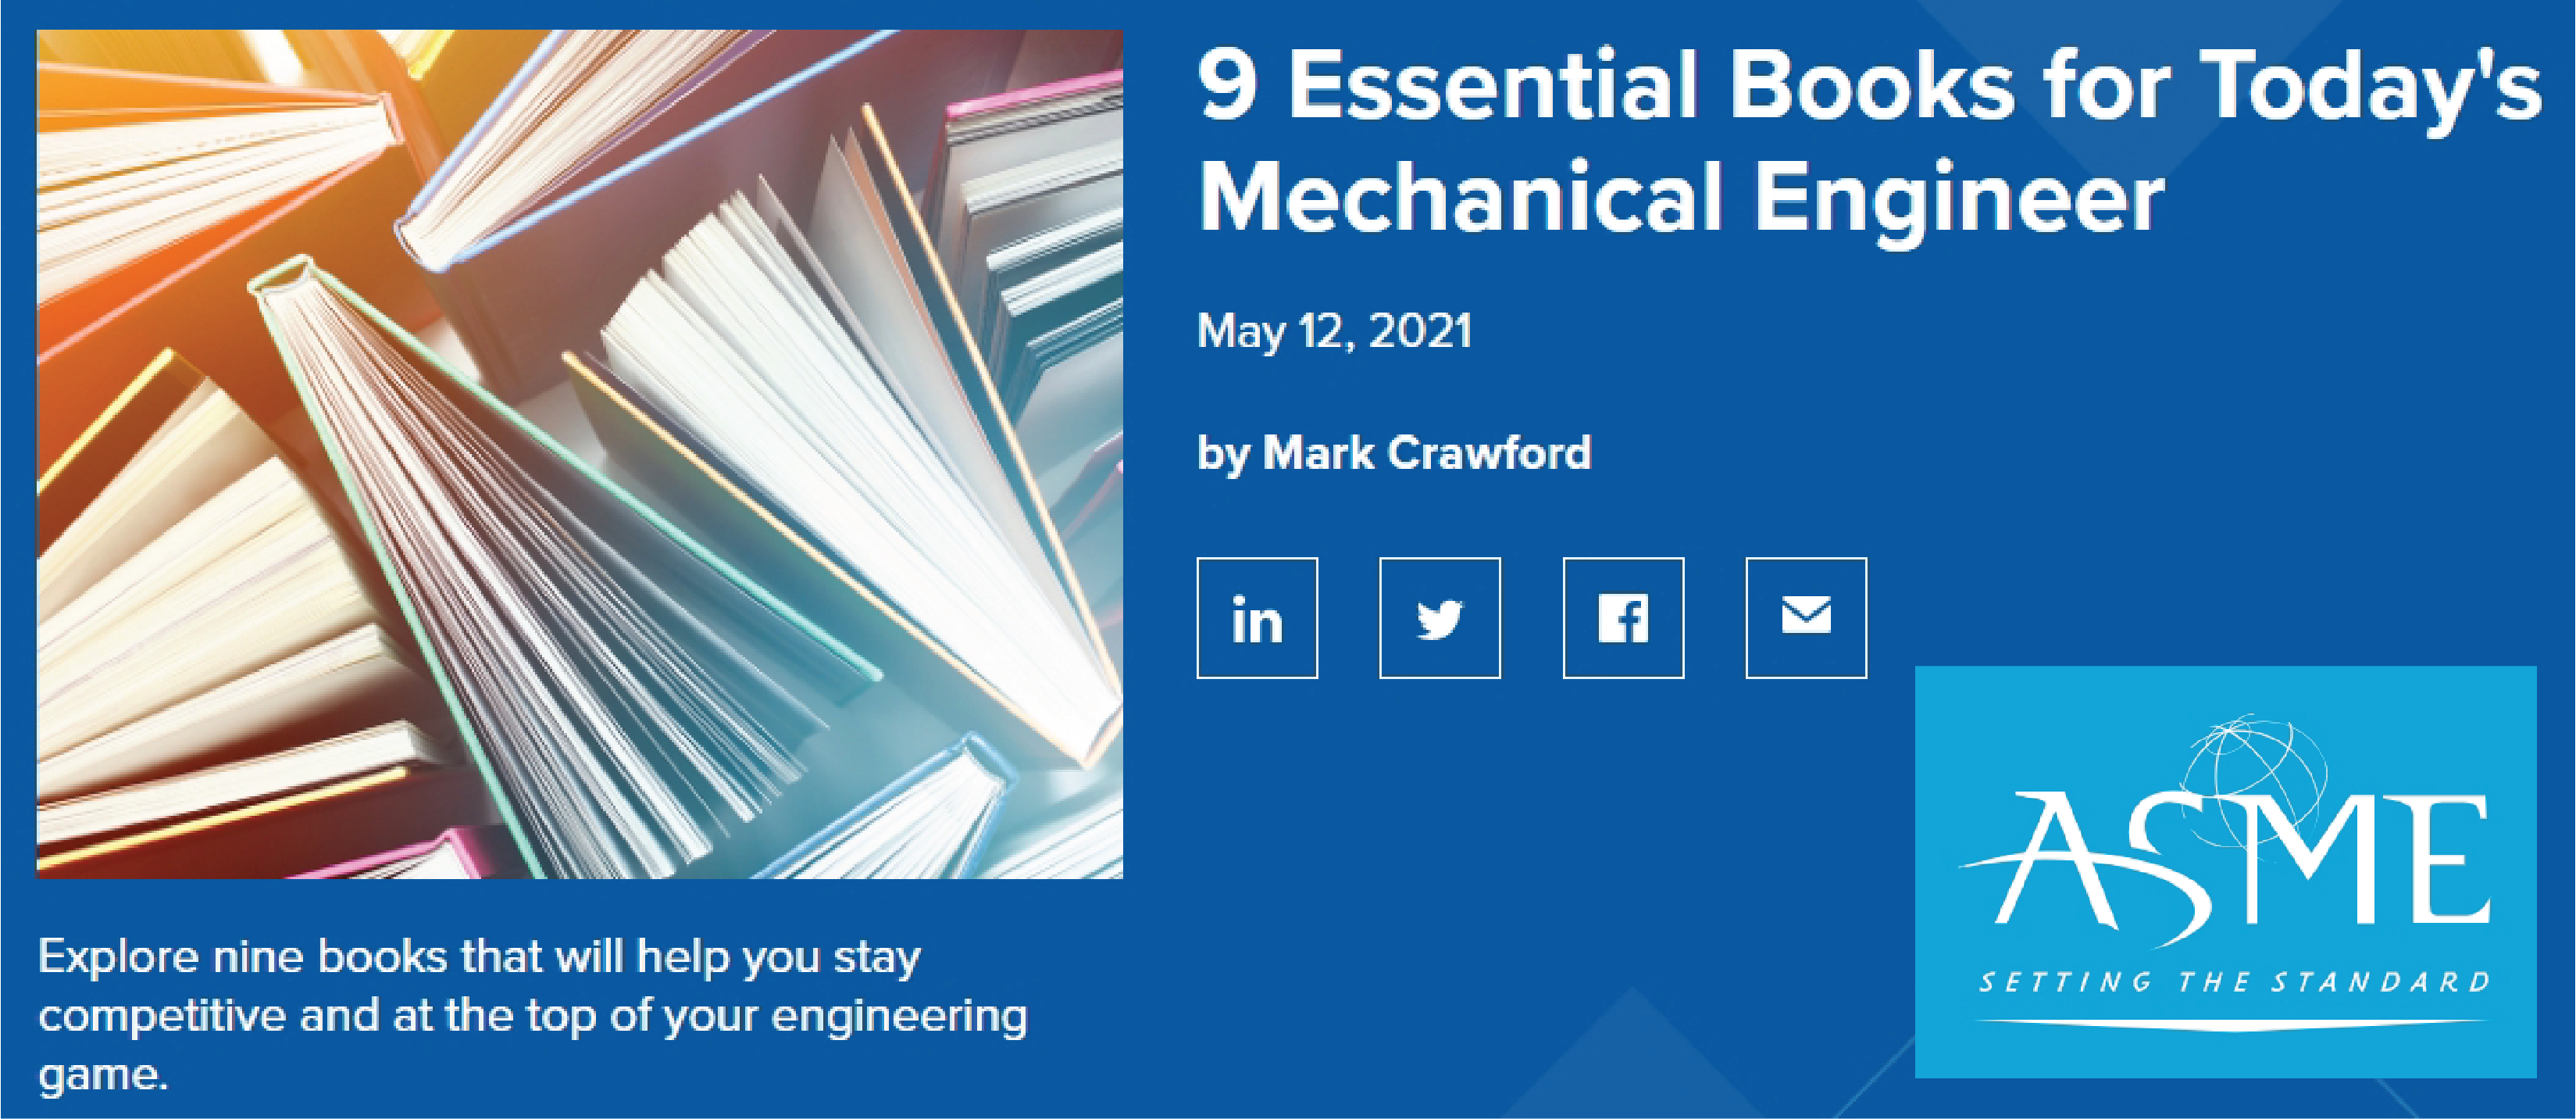 """""""9 Essential Books for Today's Mechanical Engineer"""" by ASME.org"""